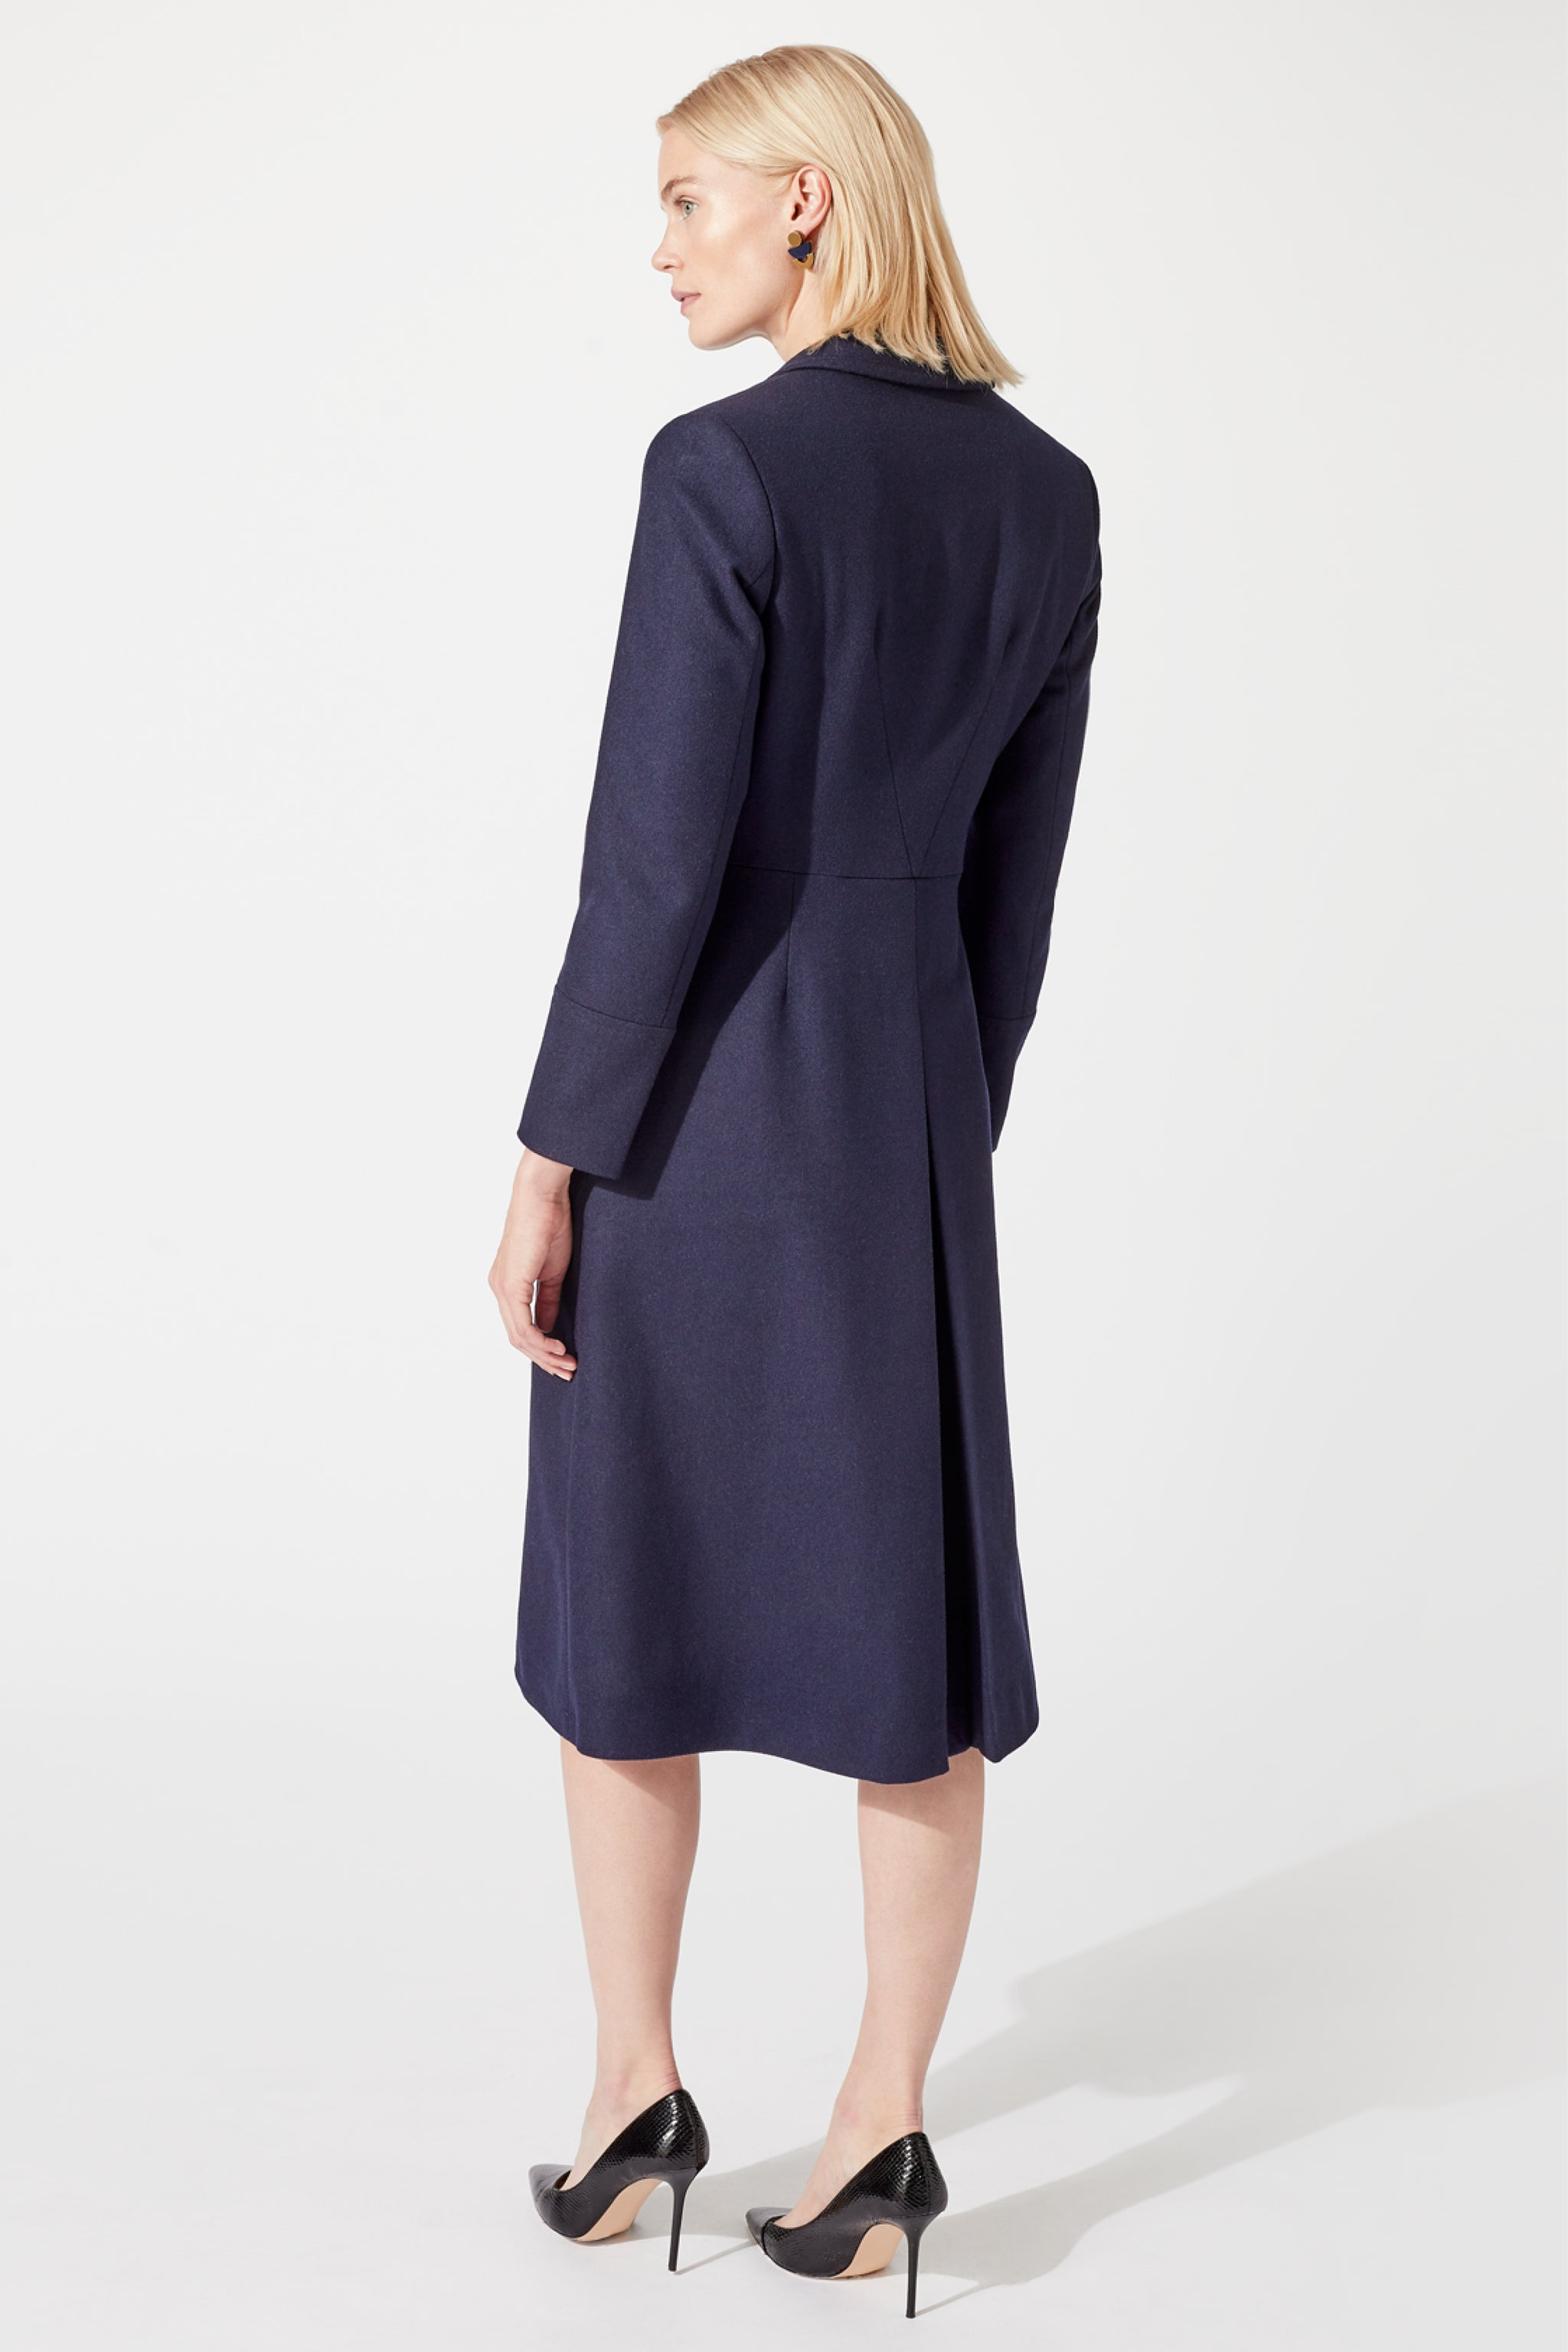 Mayfair Navy Wool Coat